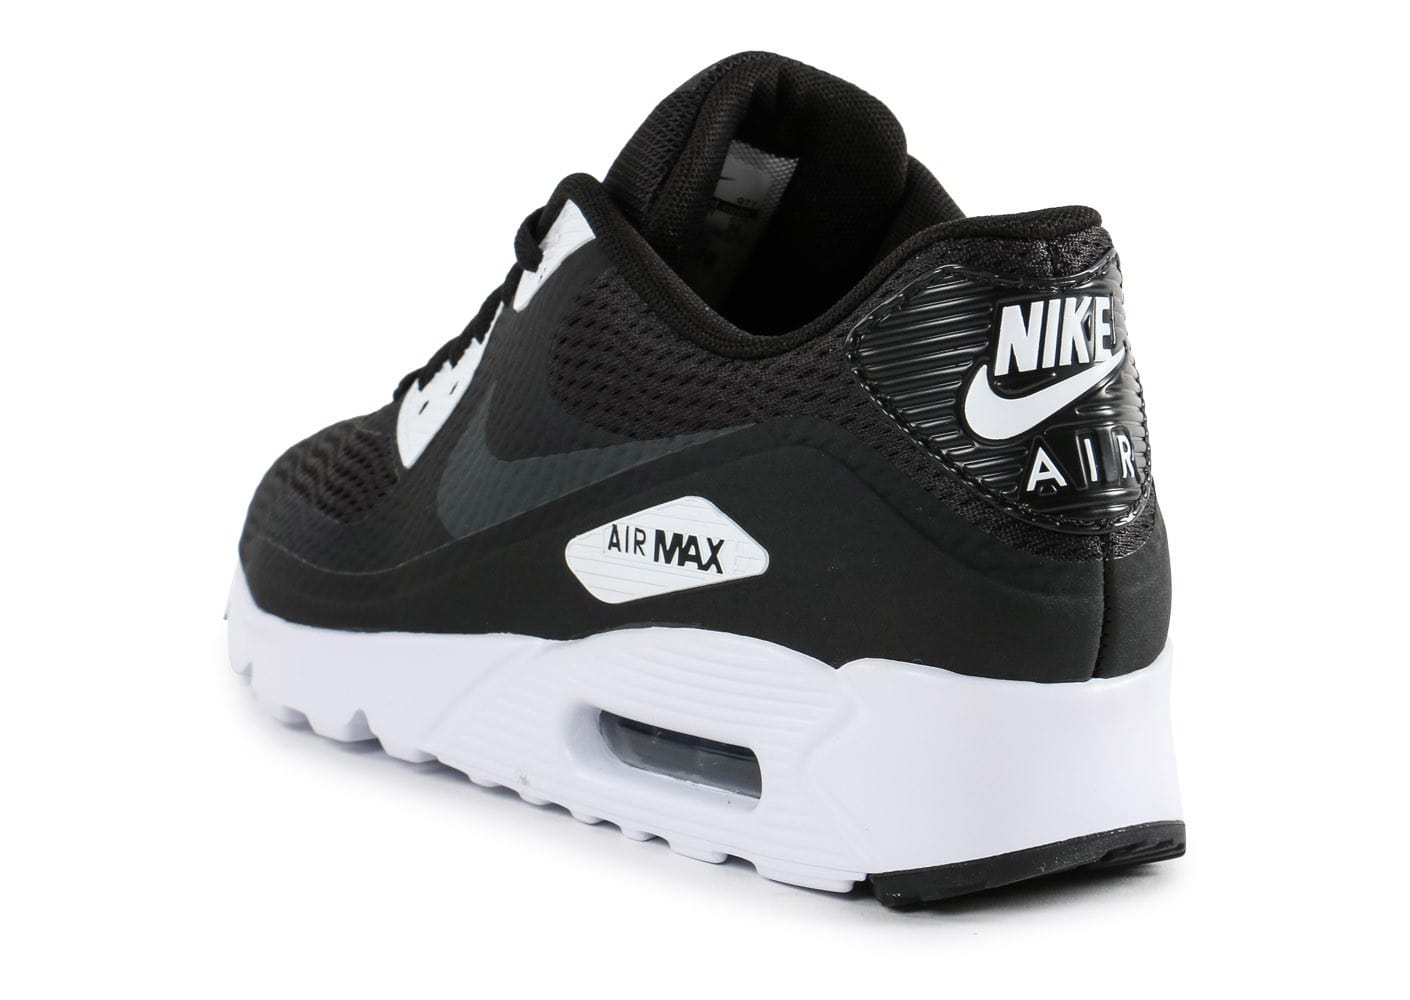 nike air max 90 ultra essential noire et blanche chaussures homme chausport. Black Bedroom Furniture Sets. Home Design Ideas